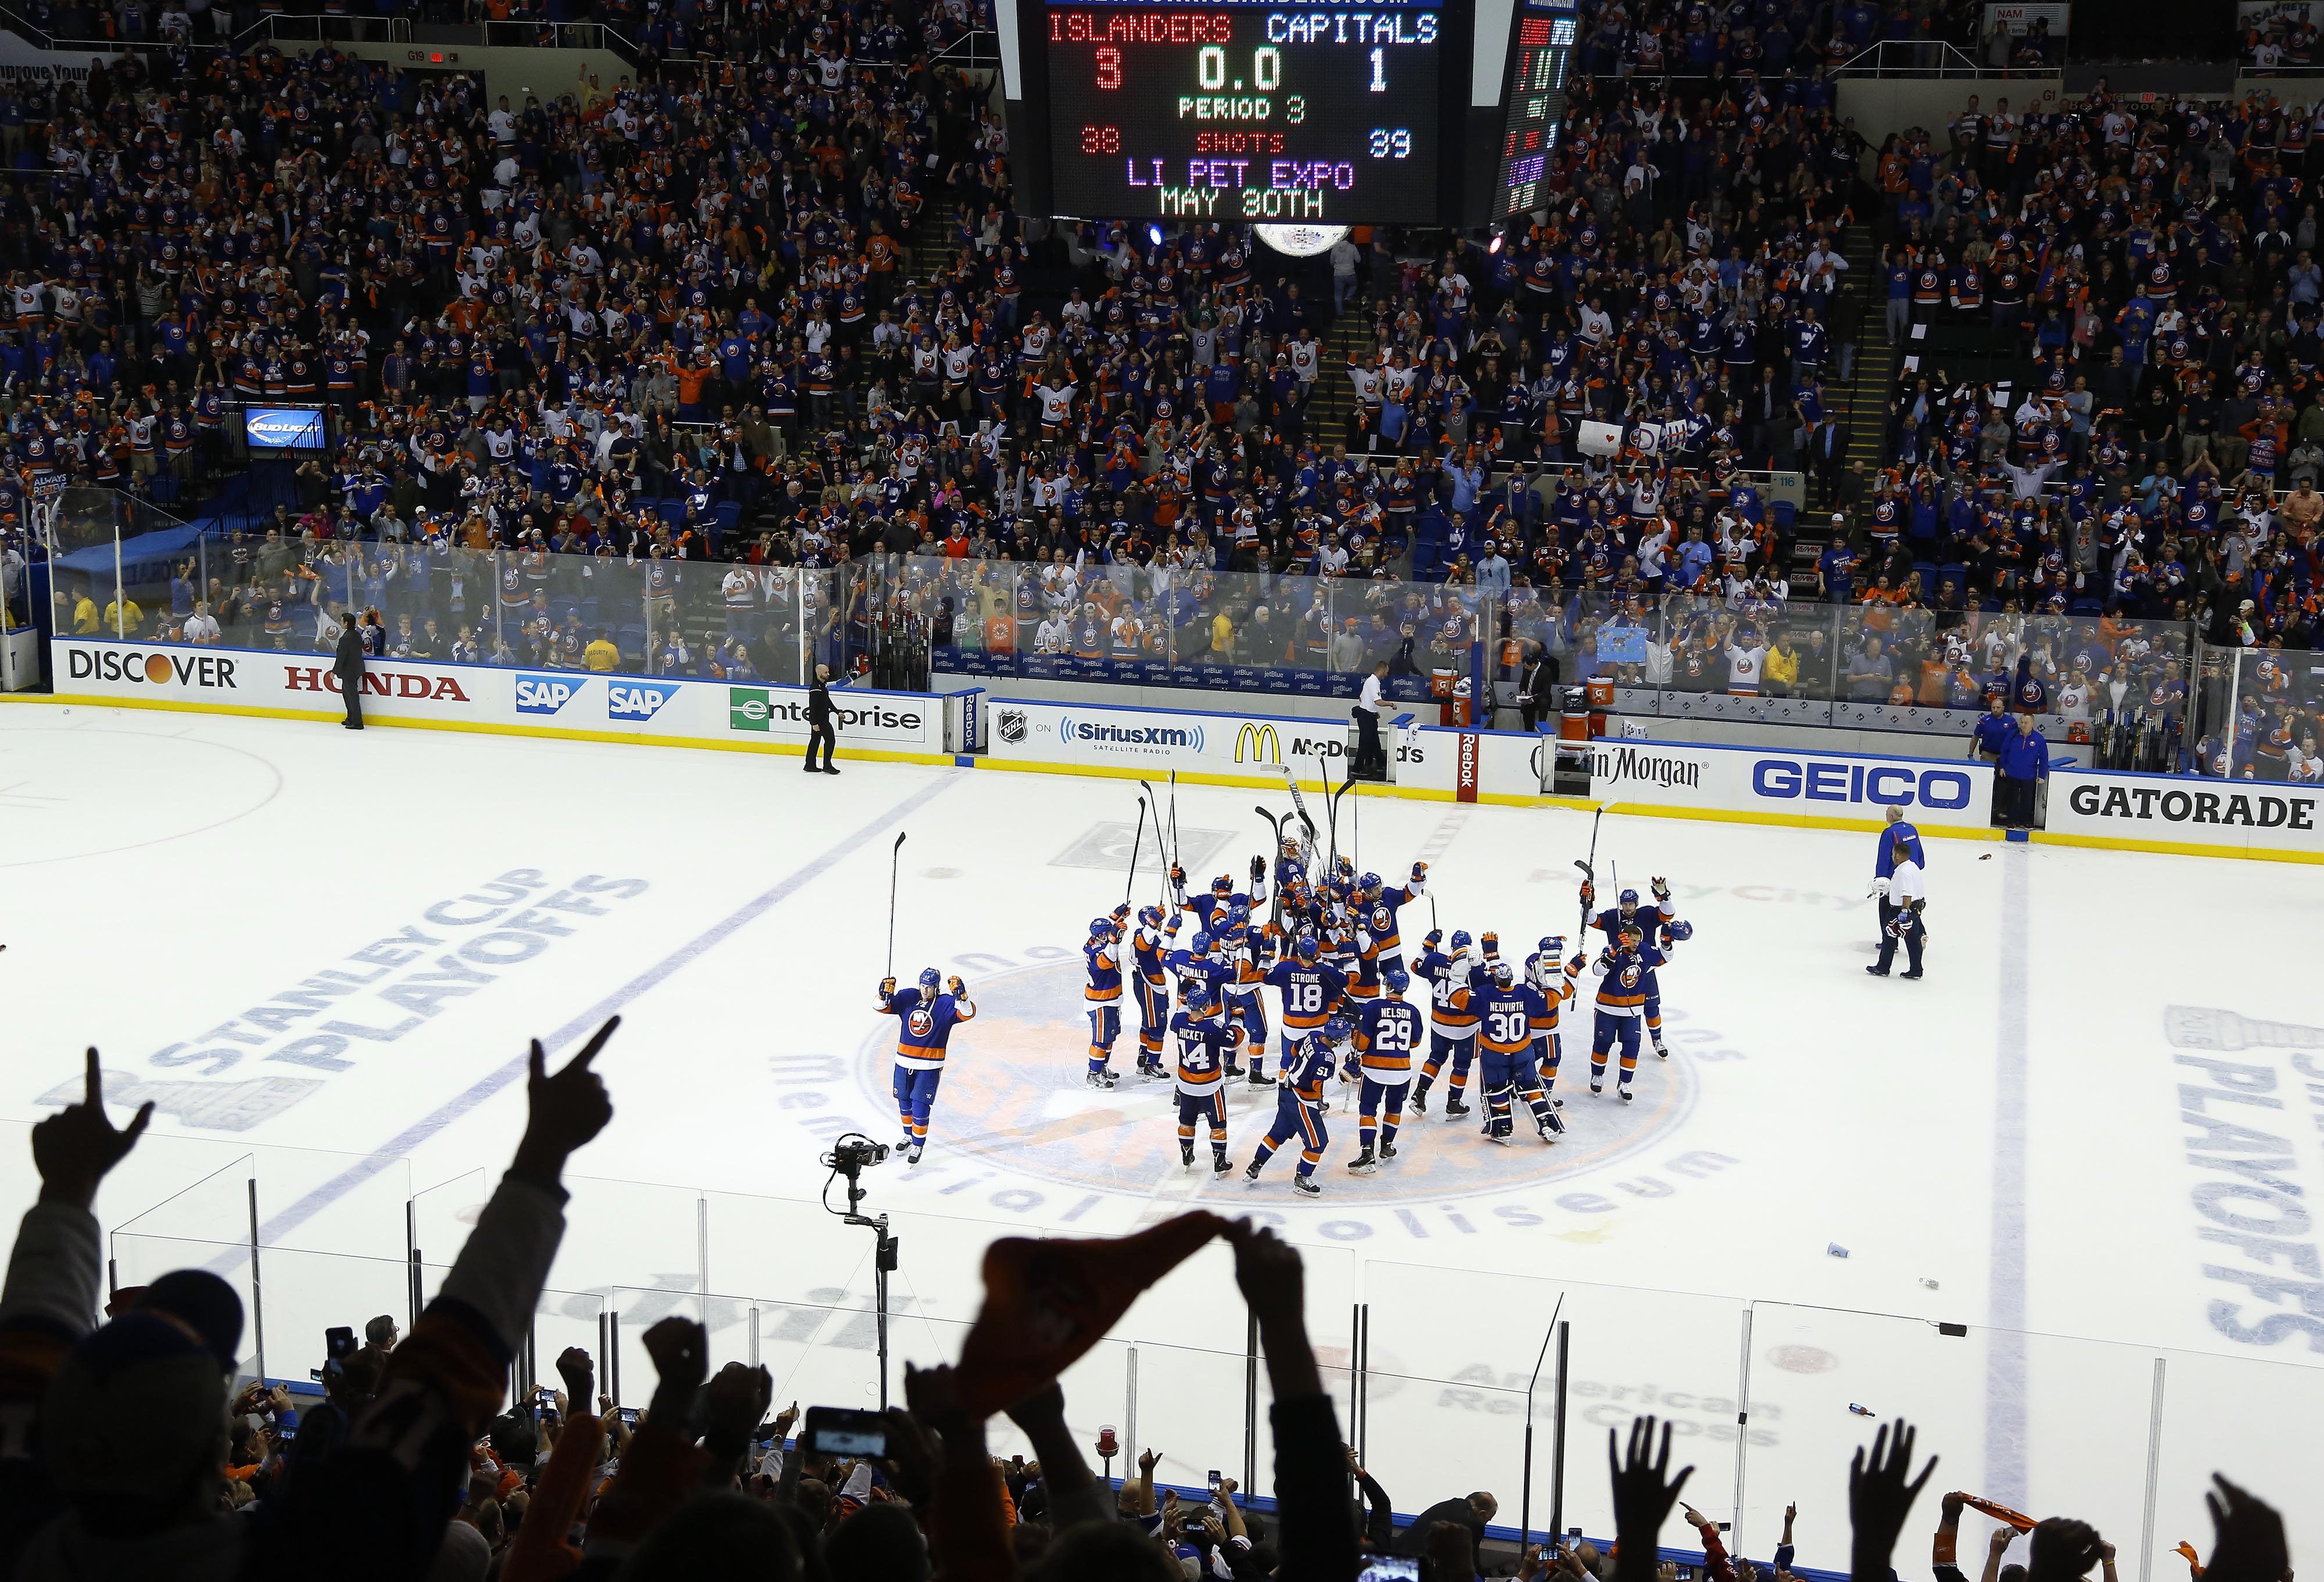 The New York Islanders celebrate at center ice after beating the Washington Capitals 3-1 in Game 6 in the first round of the NHL hockey Stanley Cup playoffs, Saturday, April 25, 2015, in Uniondale, N.Y. (AP Photo/Julie Jacobson)